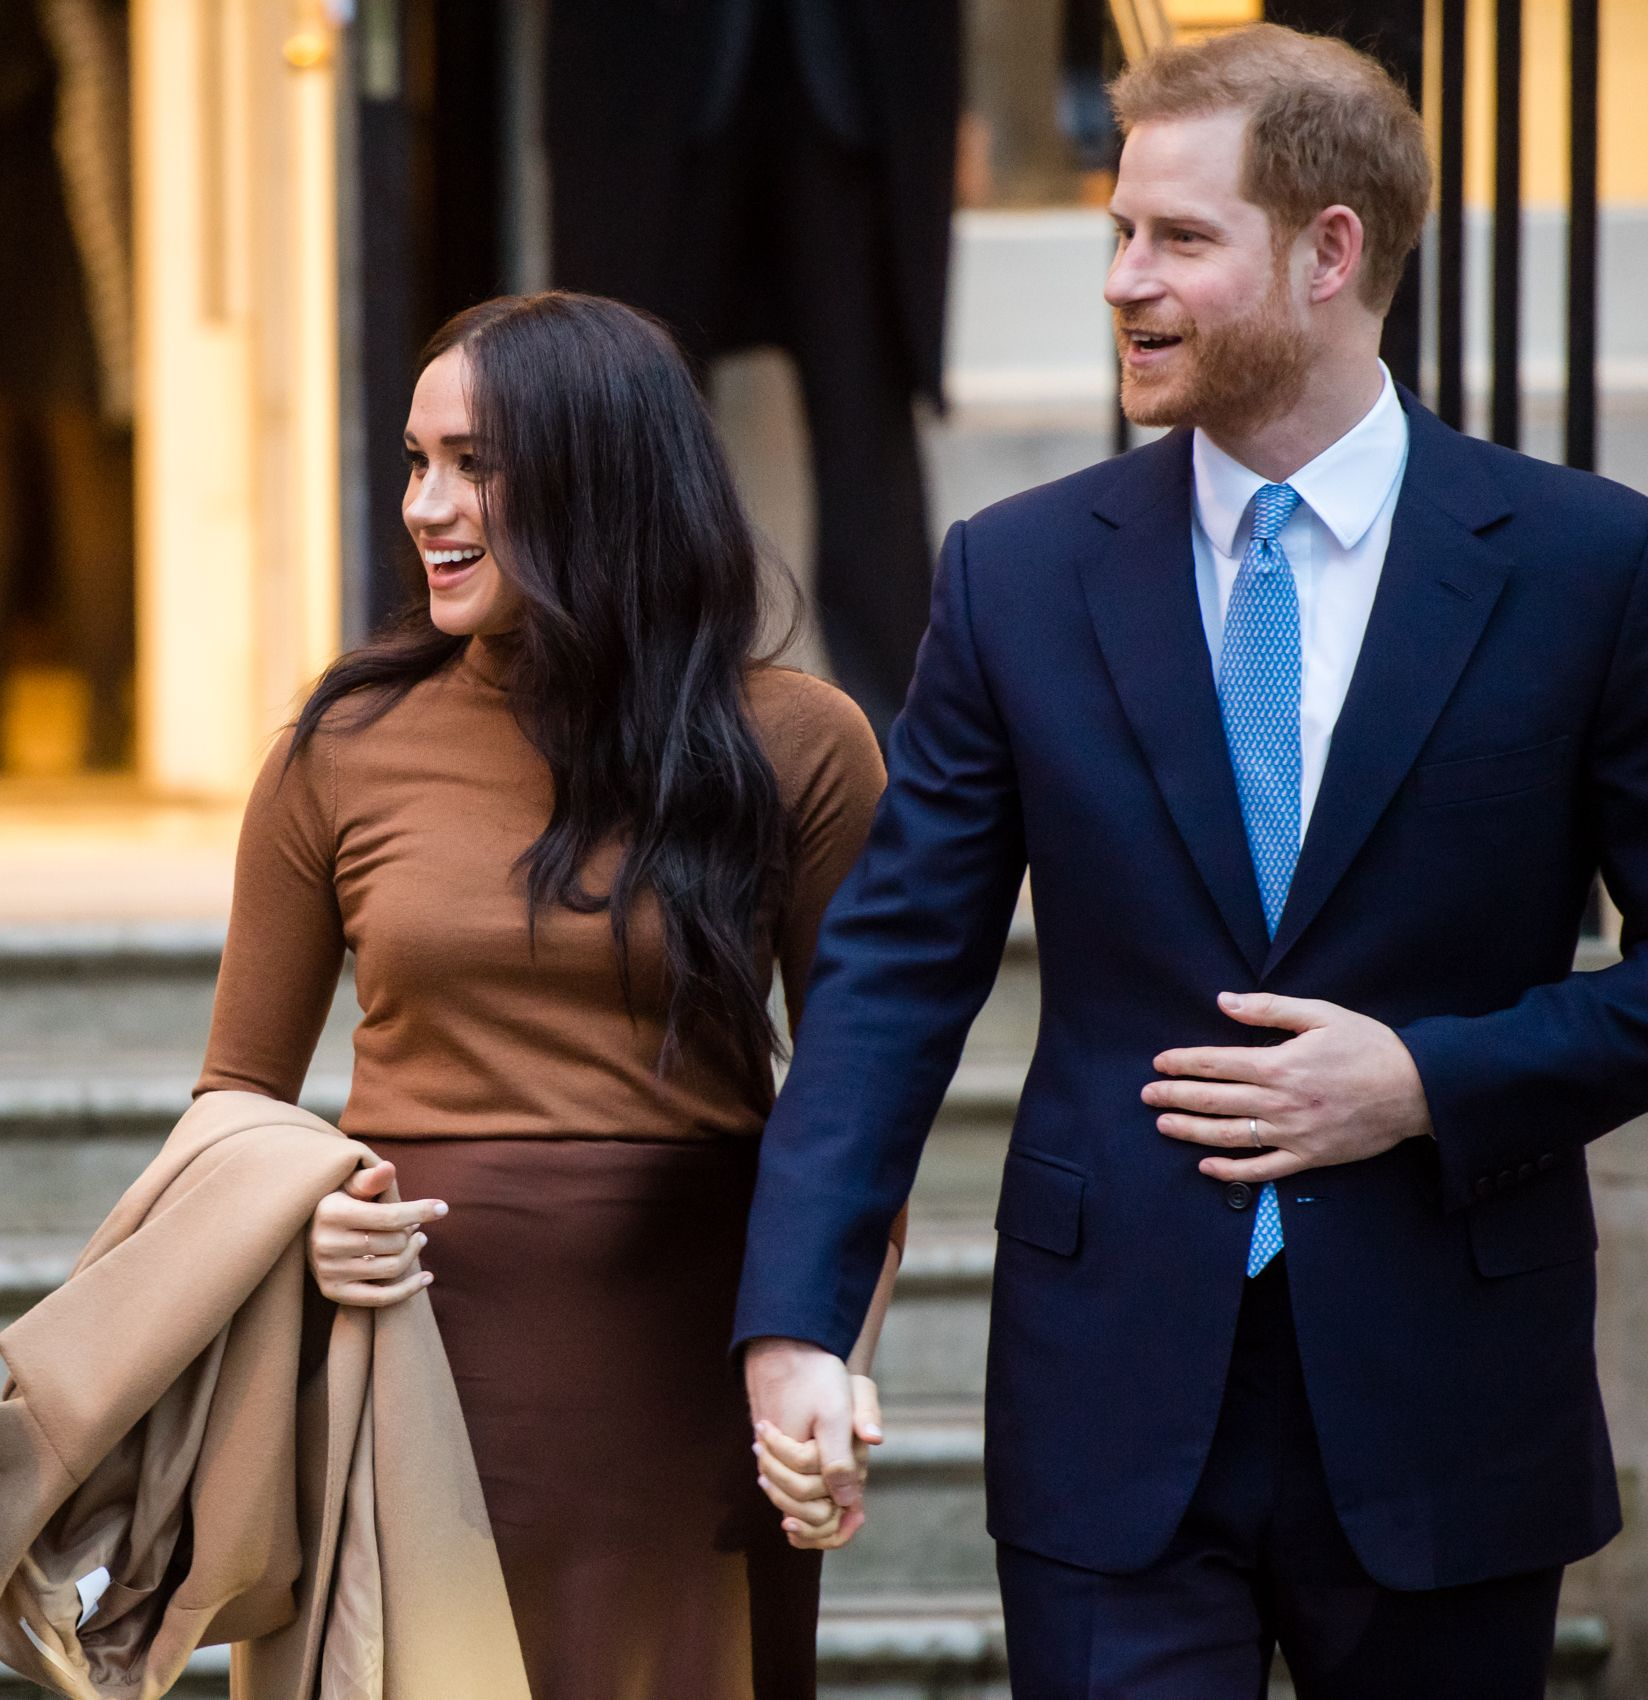 This Adorable Viral Video of Prince Harry's Subtle Acts of Love Towards Meghan Markle Is All You Need to See Today